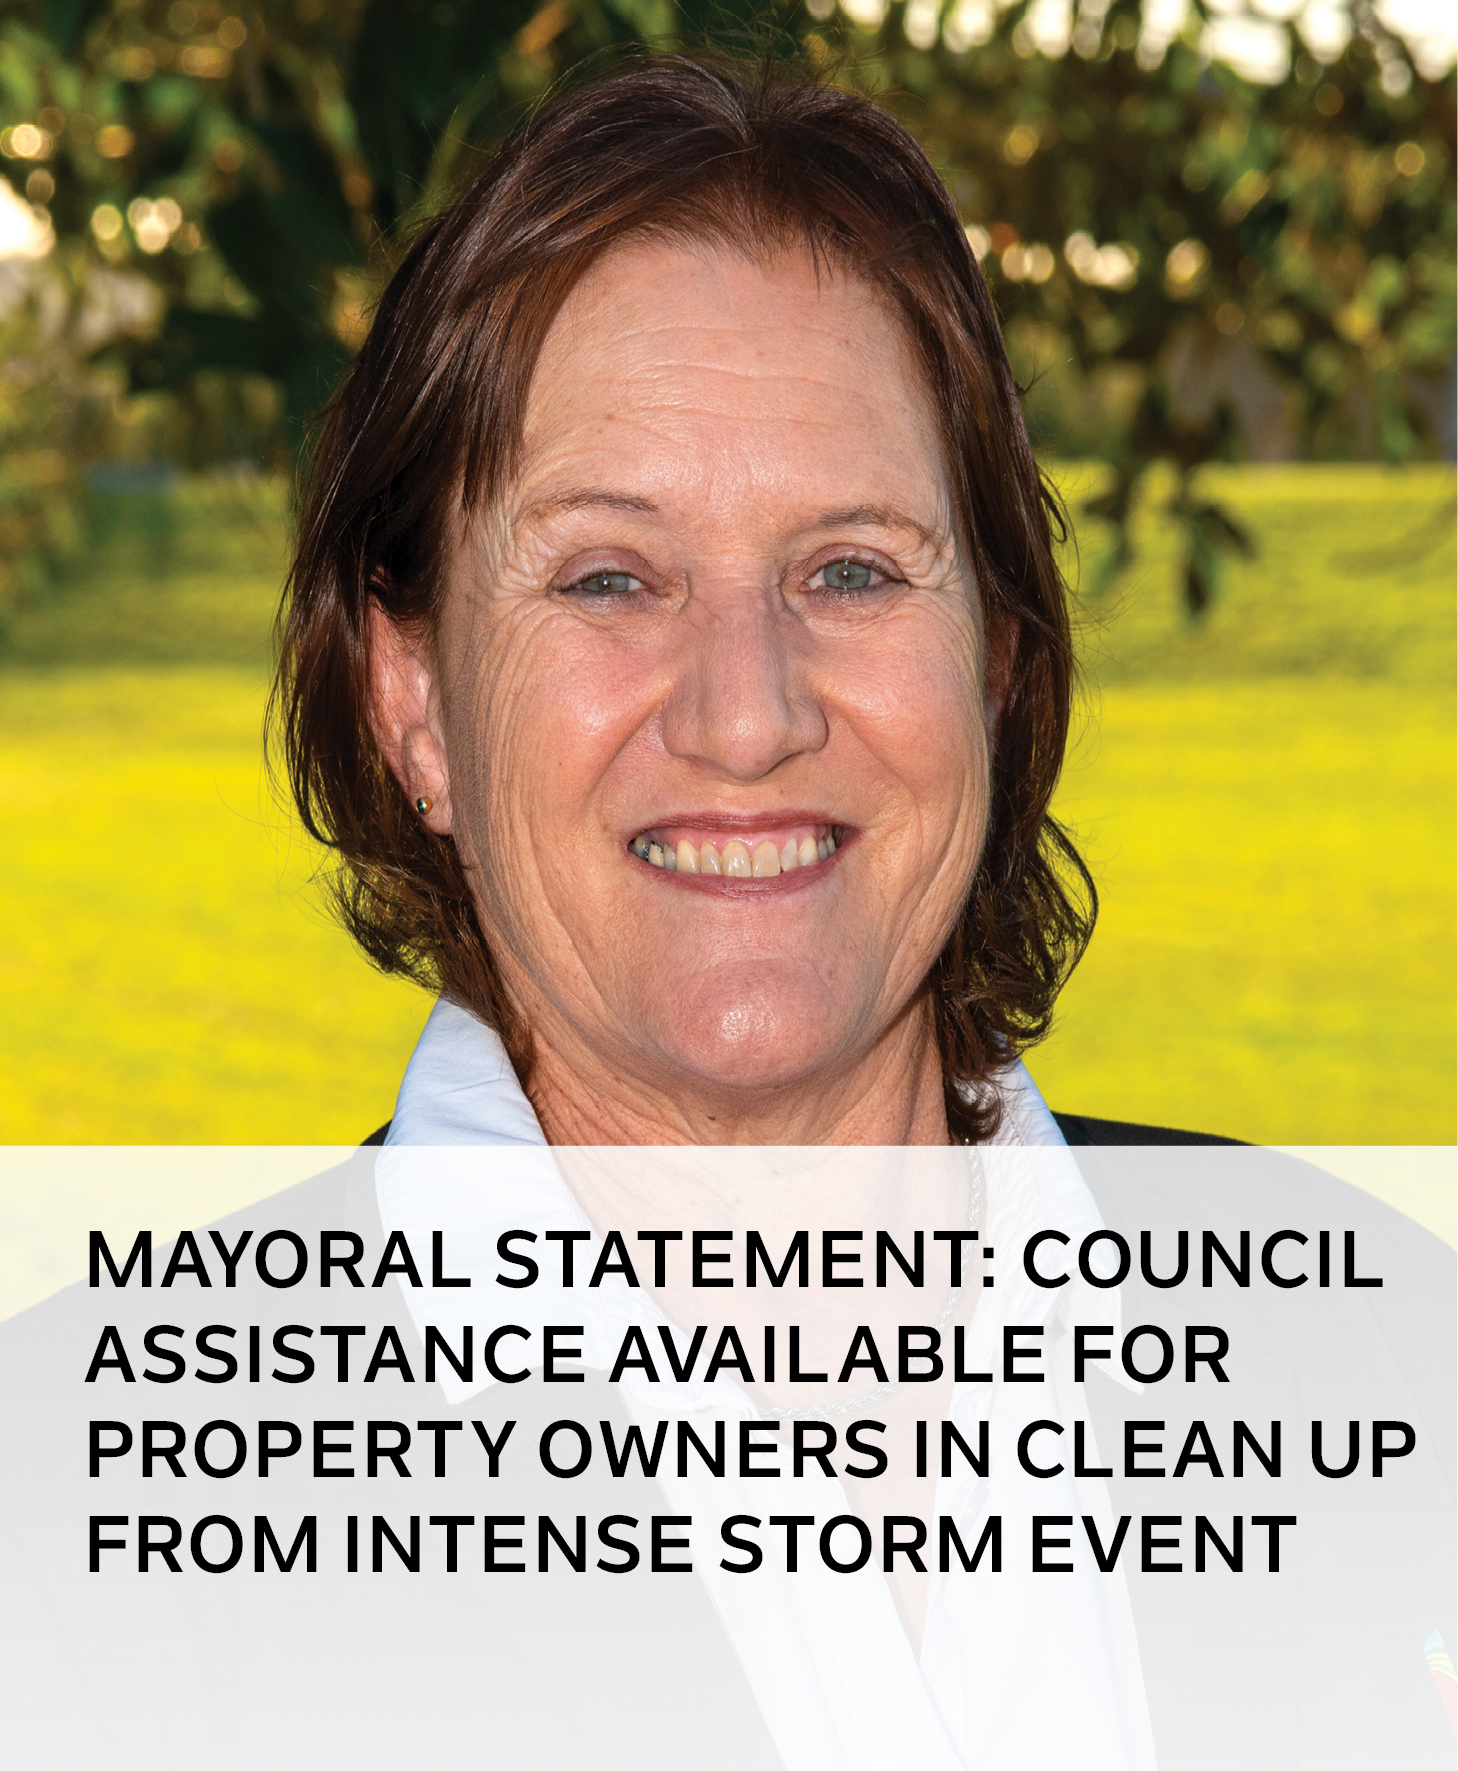 mayoral statement - storm clean up